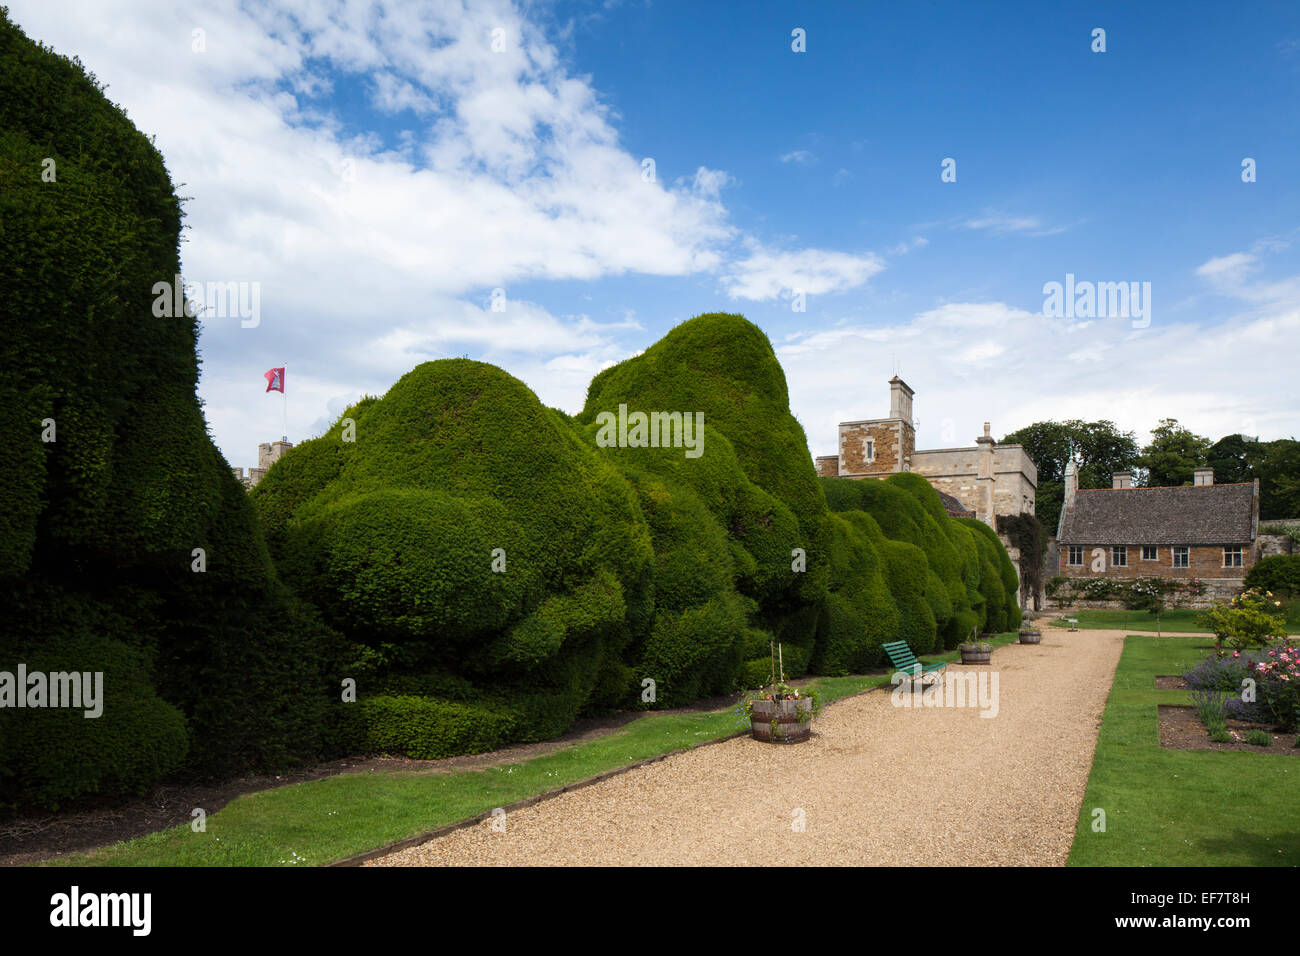 Famous double-yew hedge known as the 'Elephant' hedge in the gardens of Rockingham Castle near Corby, Northamptonshire, - Stock Image